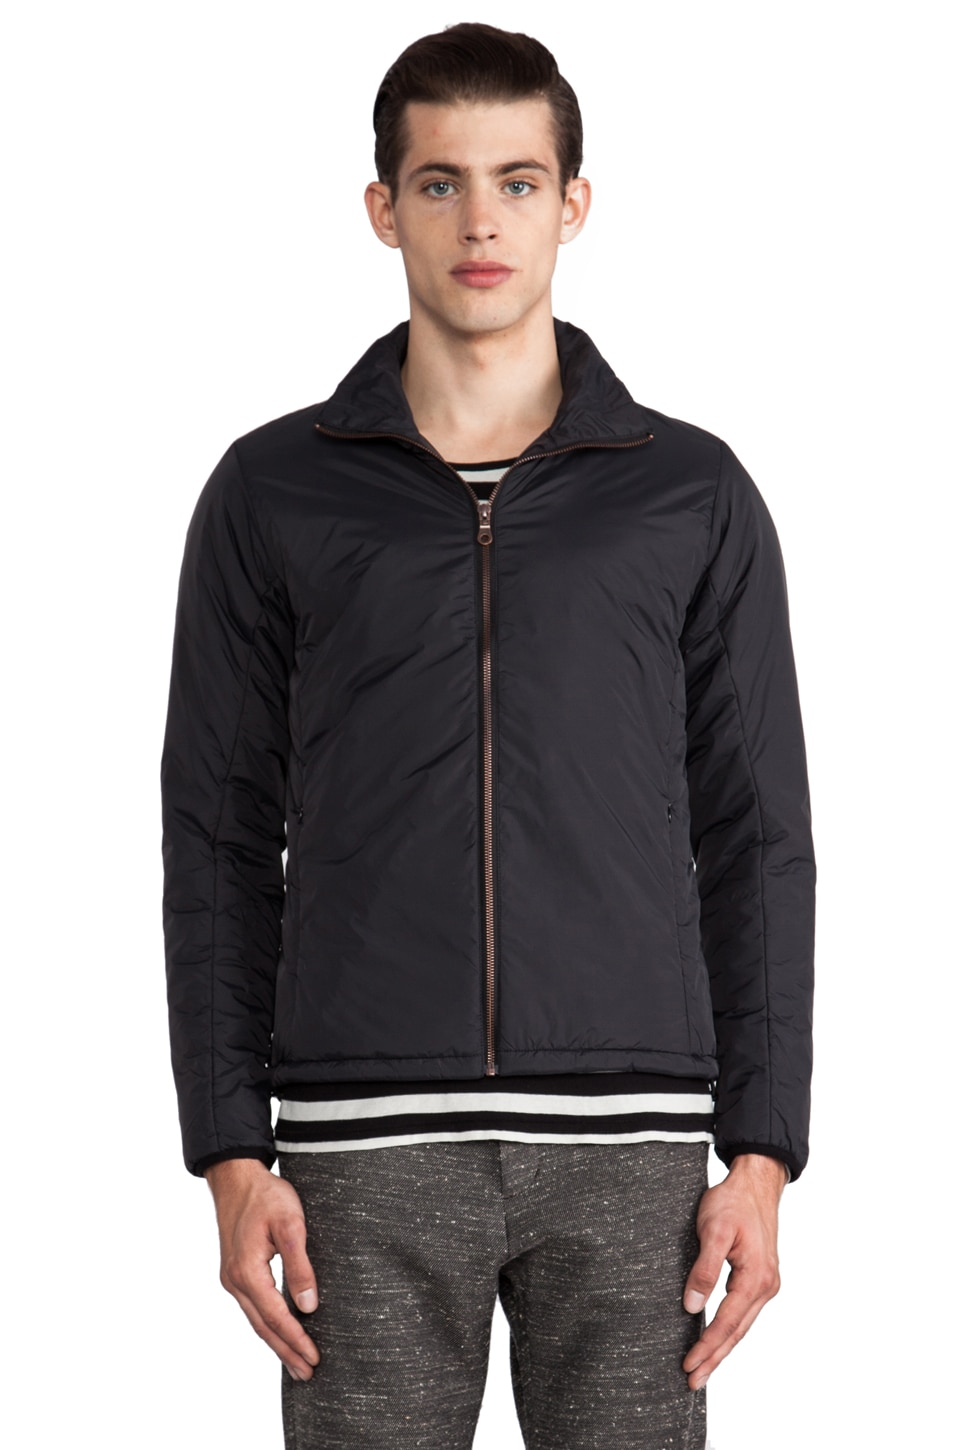 Hope Man Liner Jacket in Black